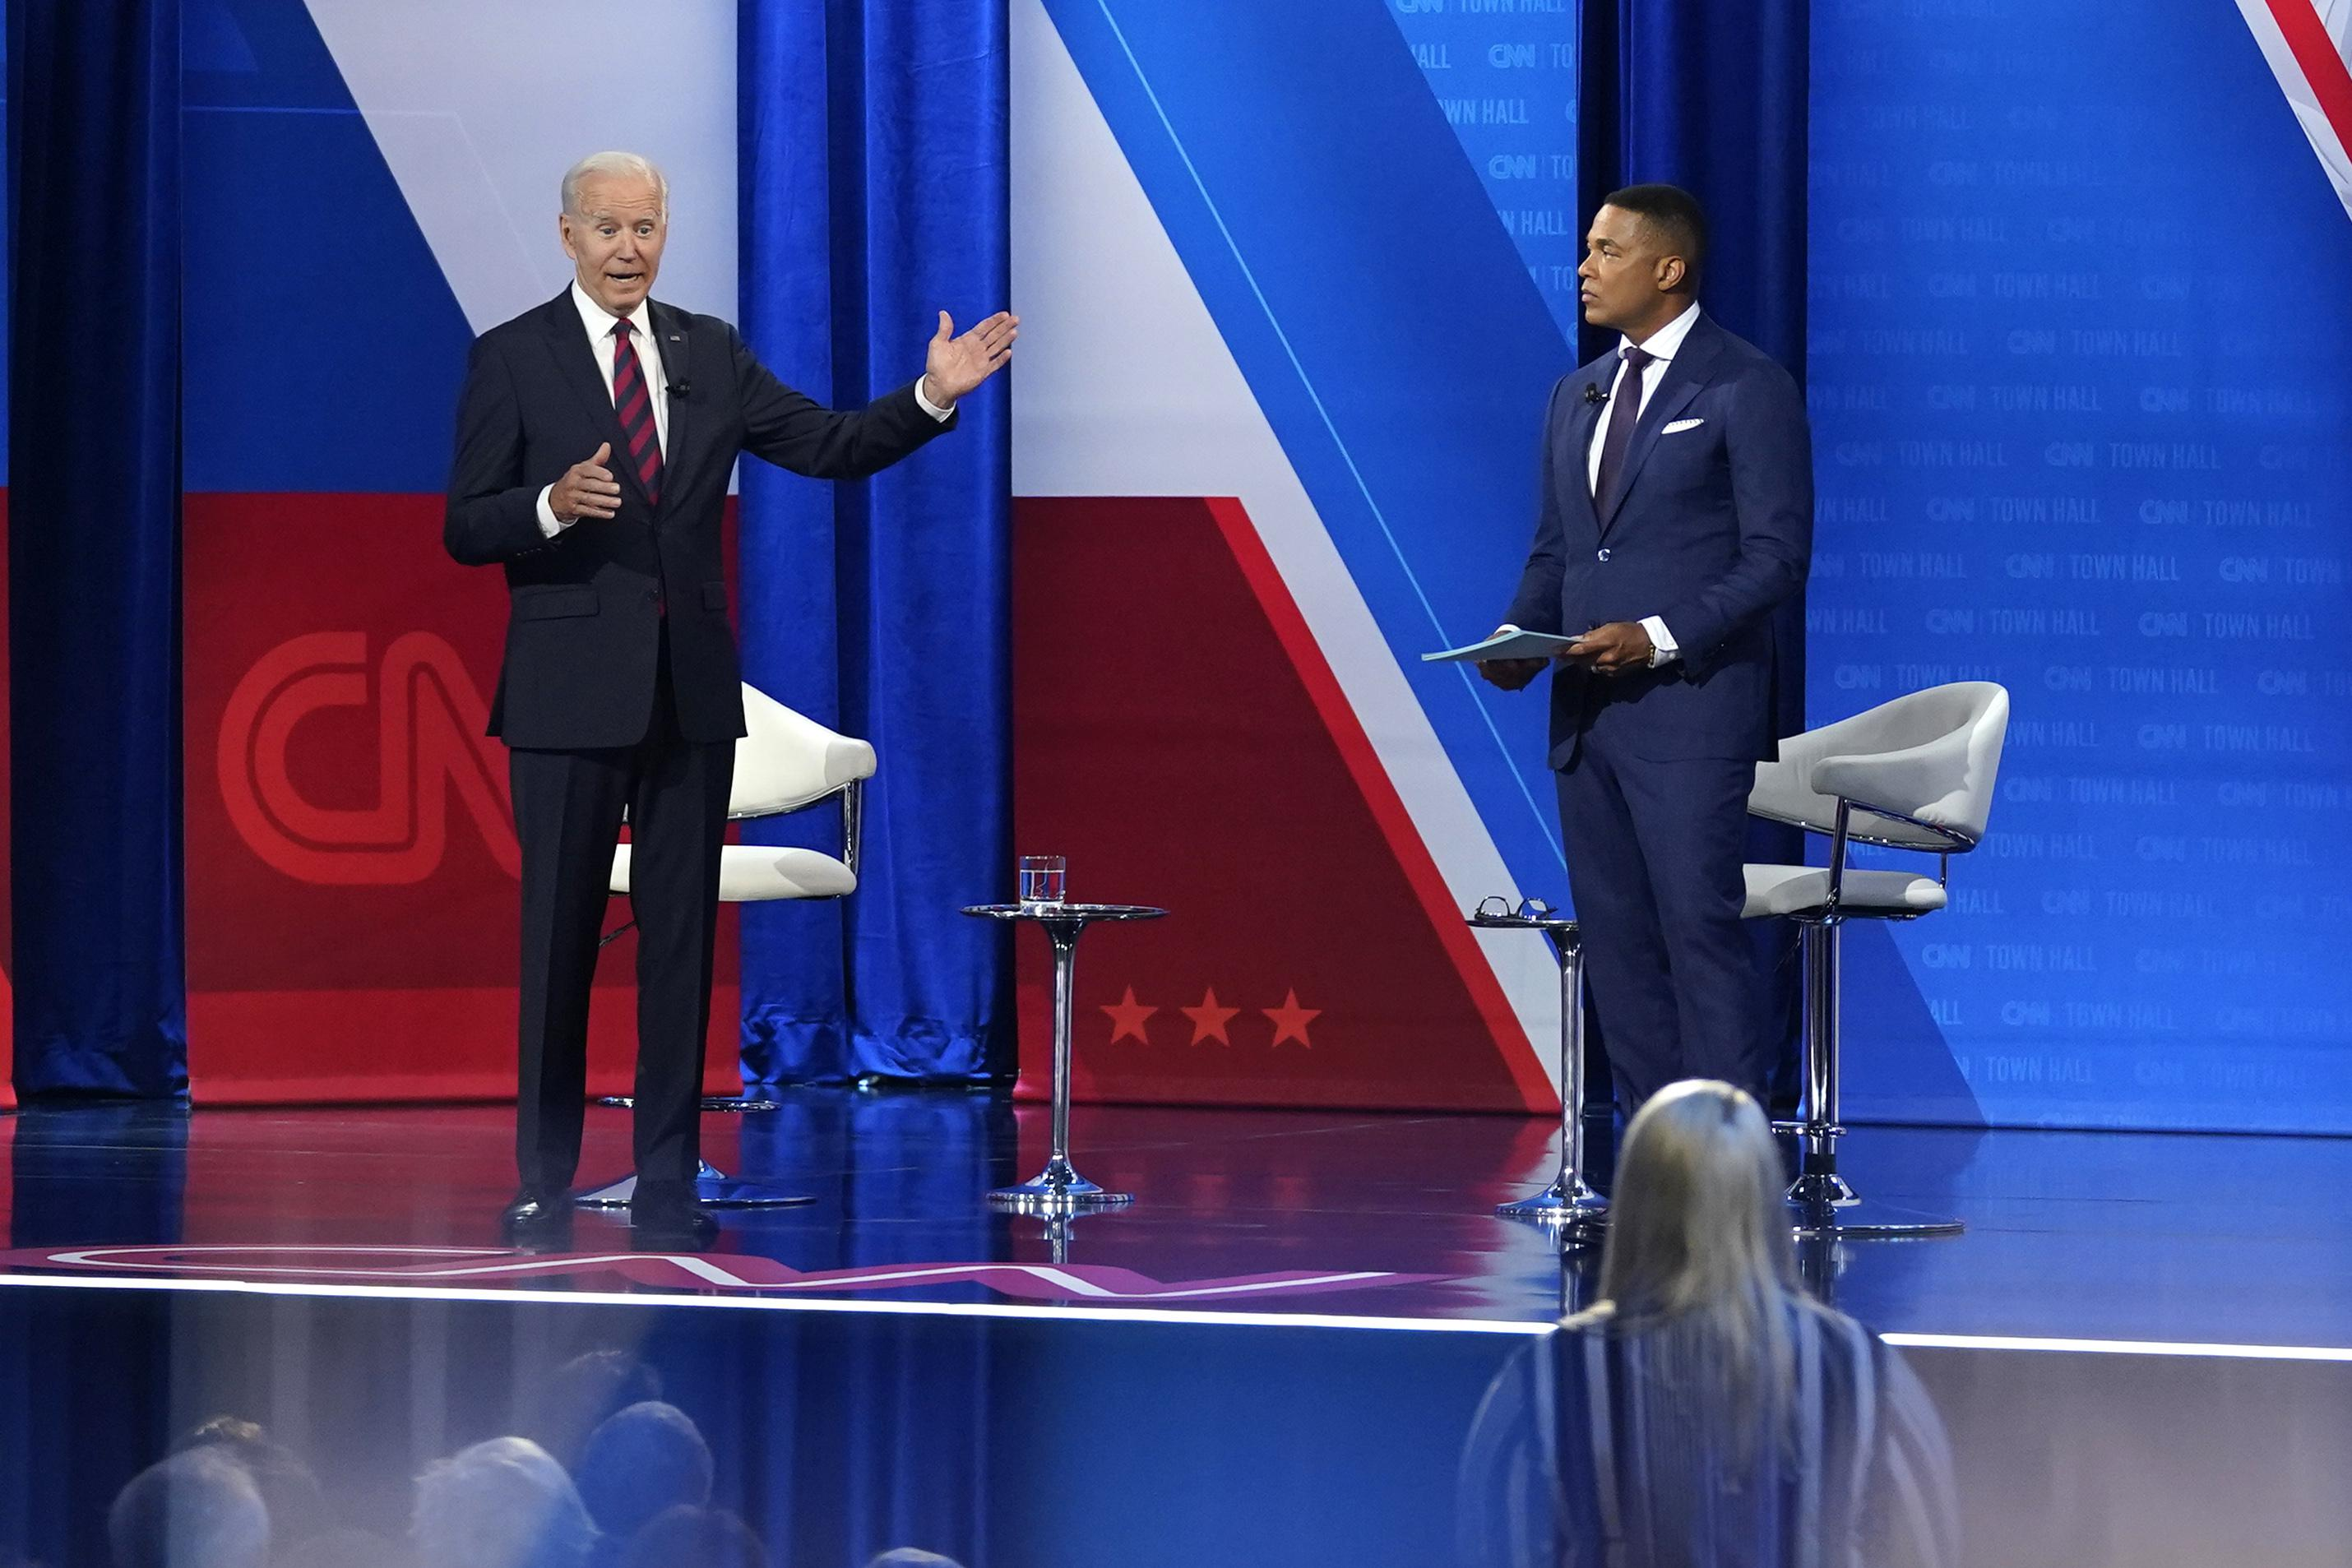 AP FACT CHECK: Biden goes too far in assurances on vaccines